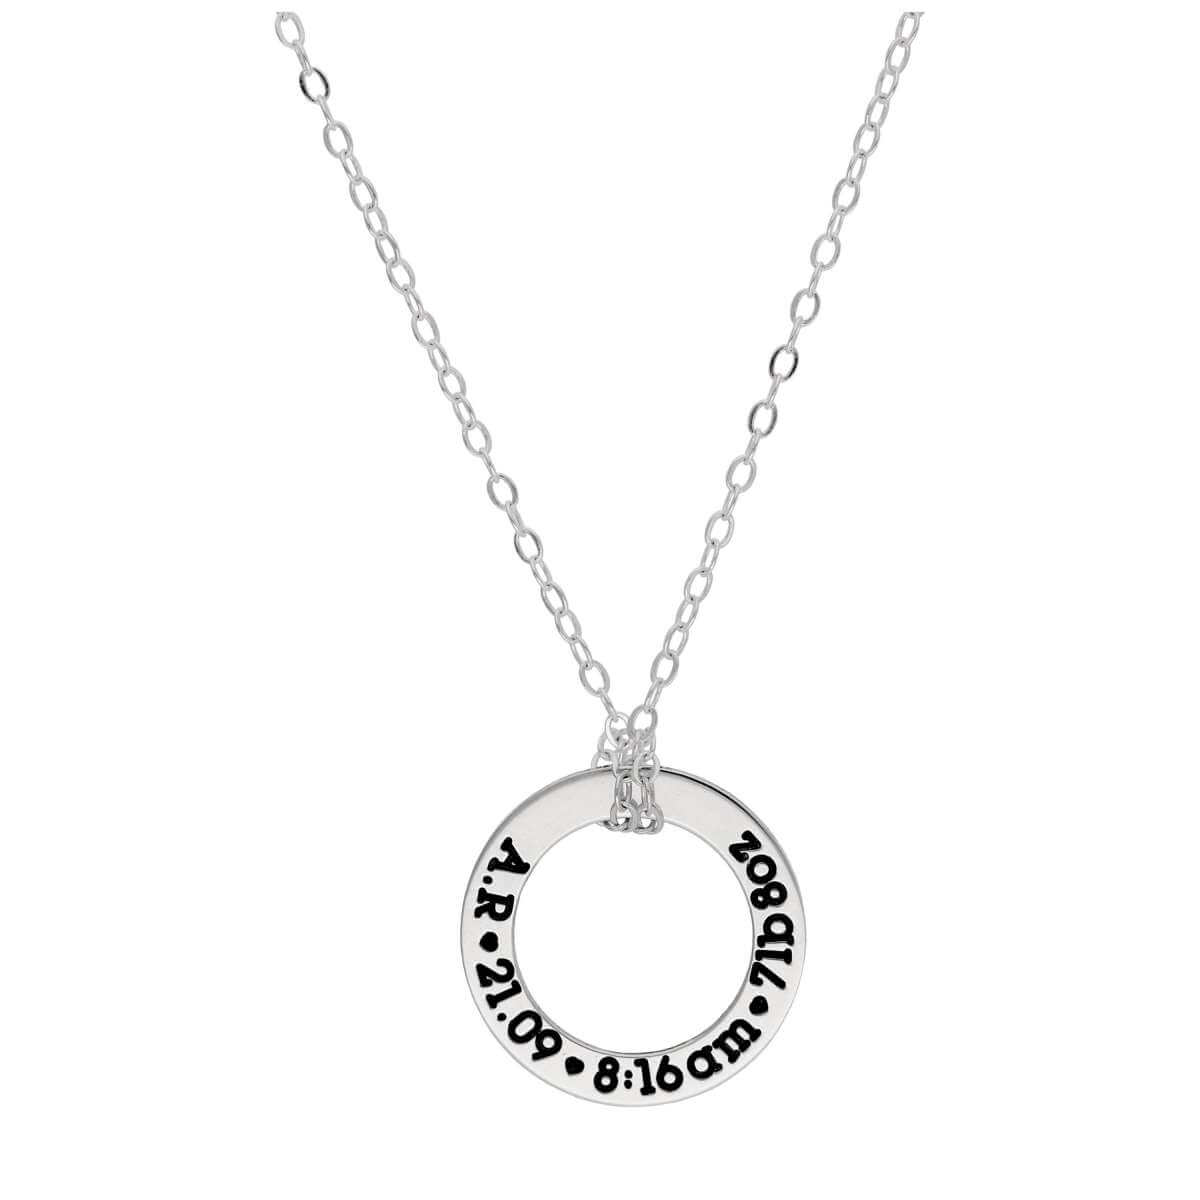 Bespoke Sterling Silver New Baby Circle Necklace 16-28 Inches